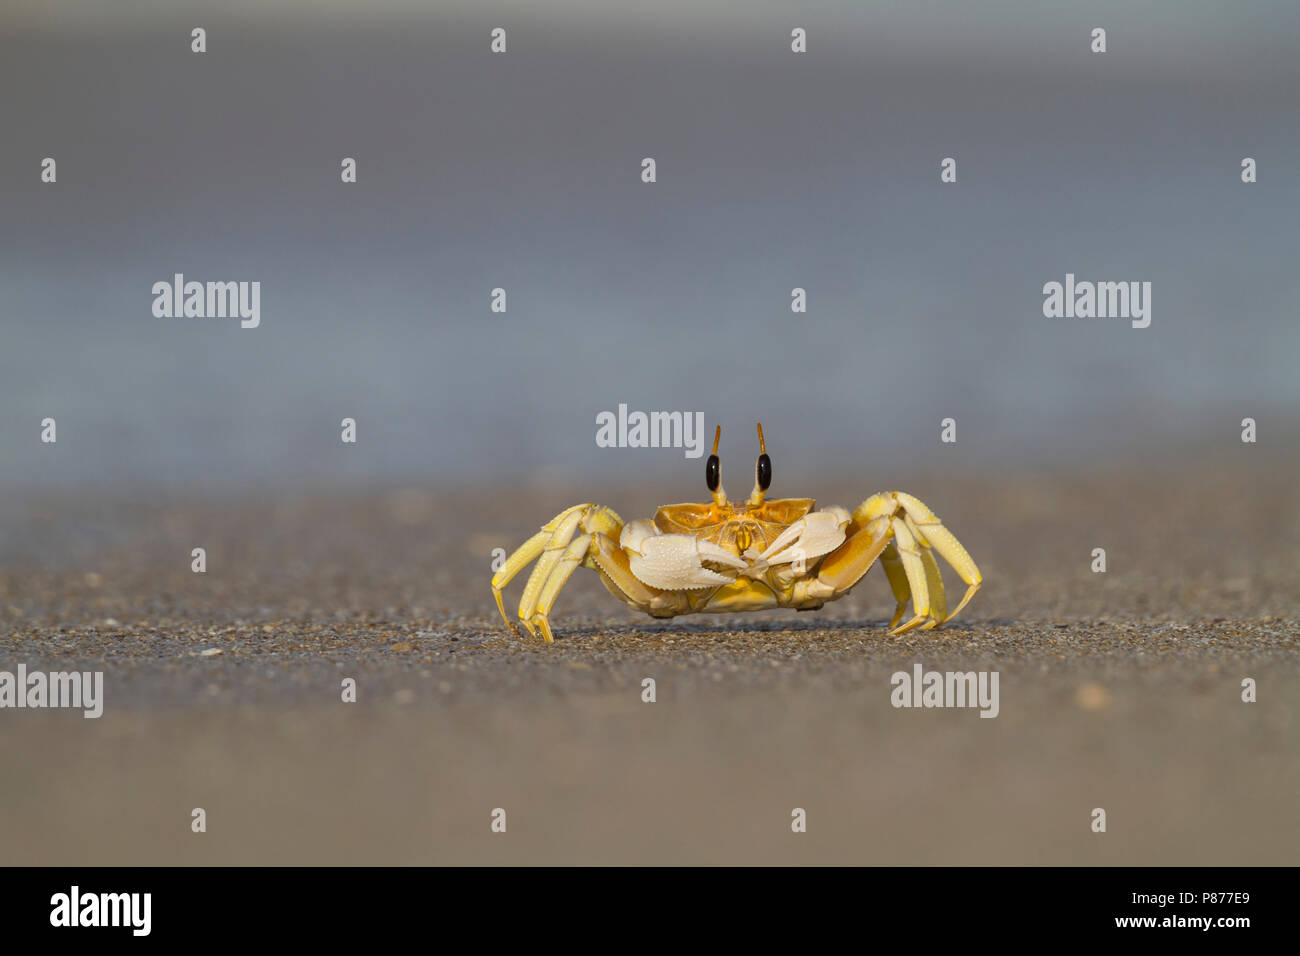 Crab foraging on the beach in Oman - Stock Image